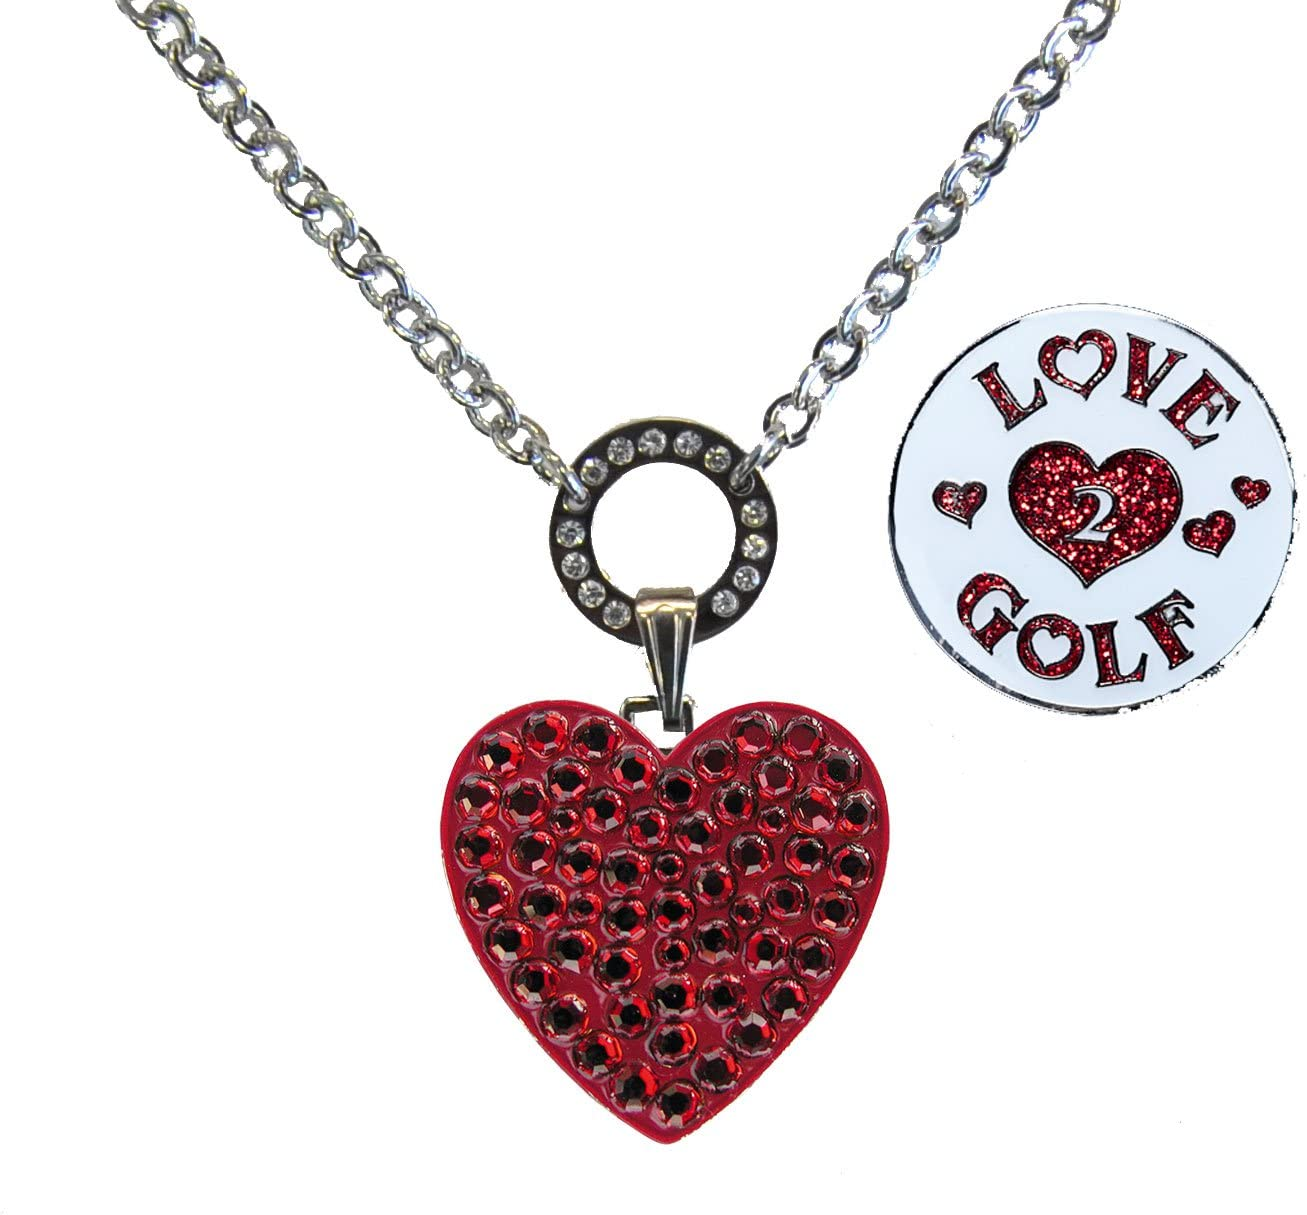 Navika Magnetic OFFicial All stores are sold store Ball Marker Necklace Red Adorned Heart with